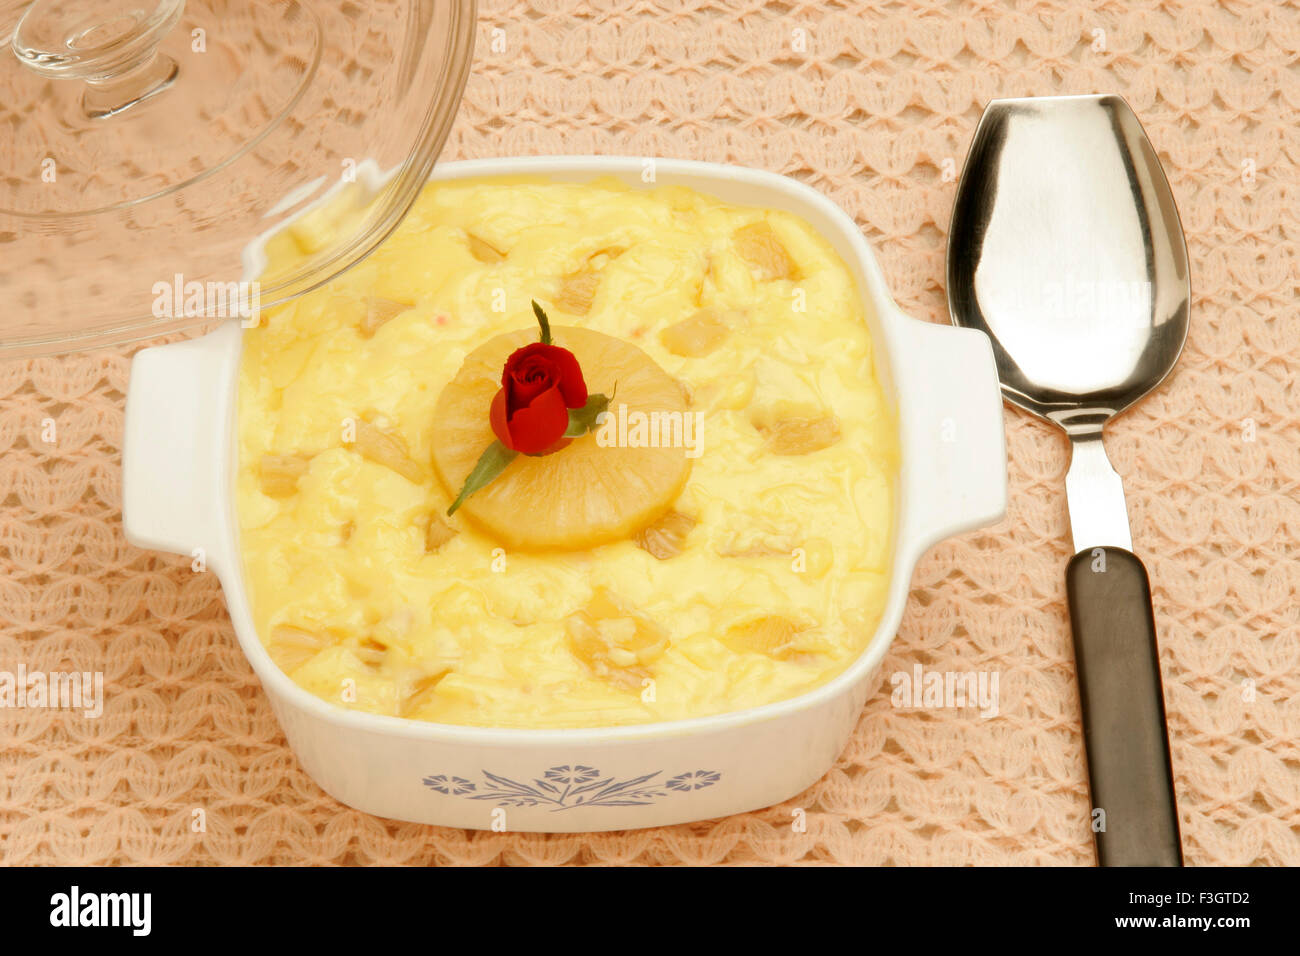 Pudding made song cake vanilla custard and pineapple pieces glass lid red rose centre serving spoon served lunch - Stock Image